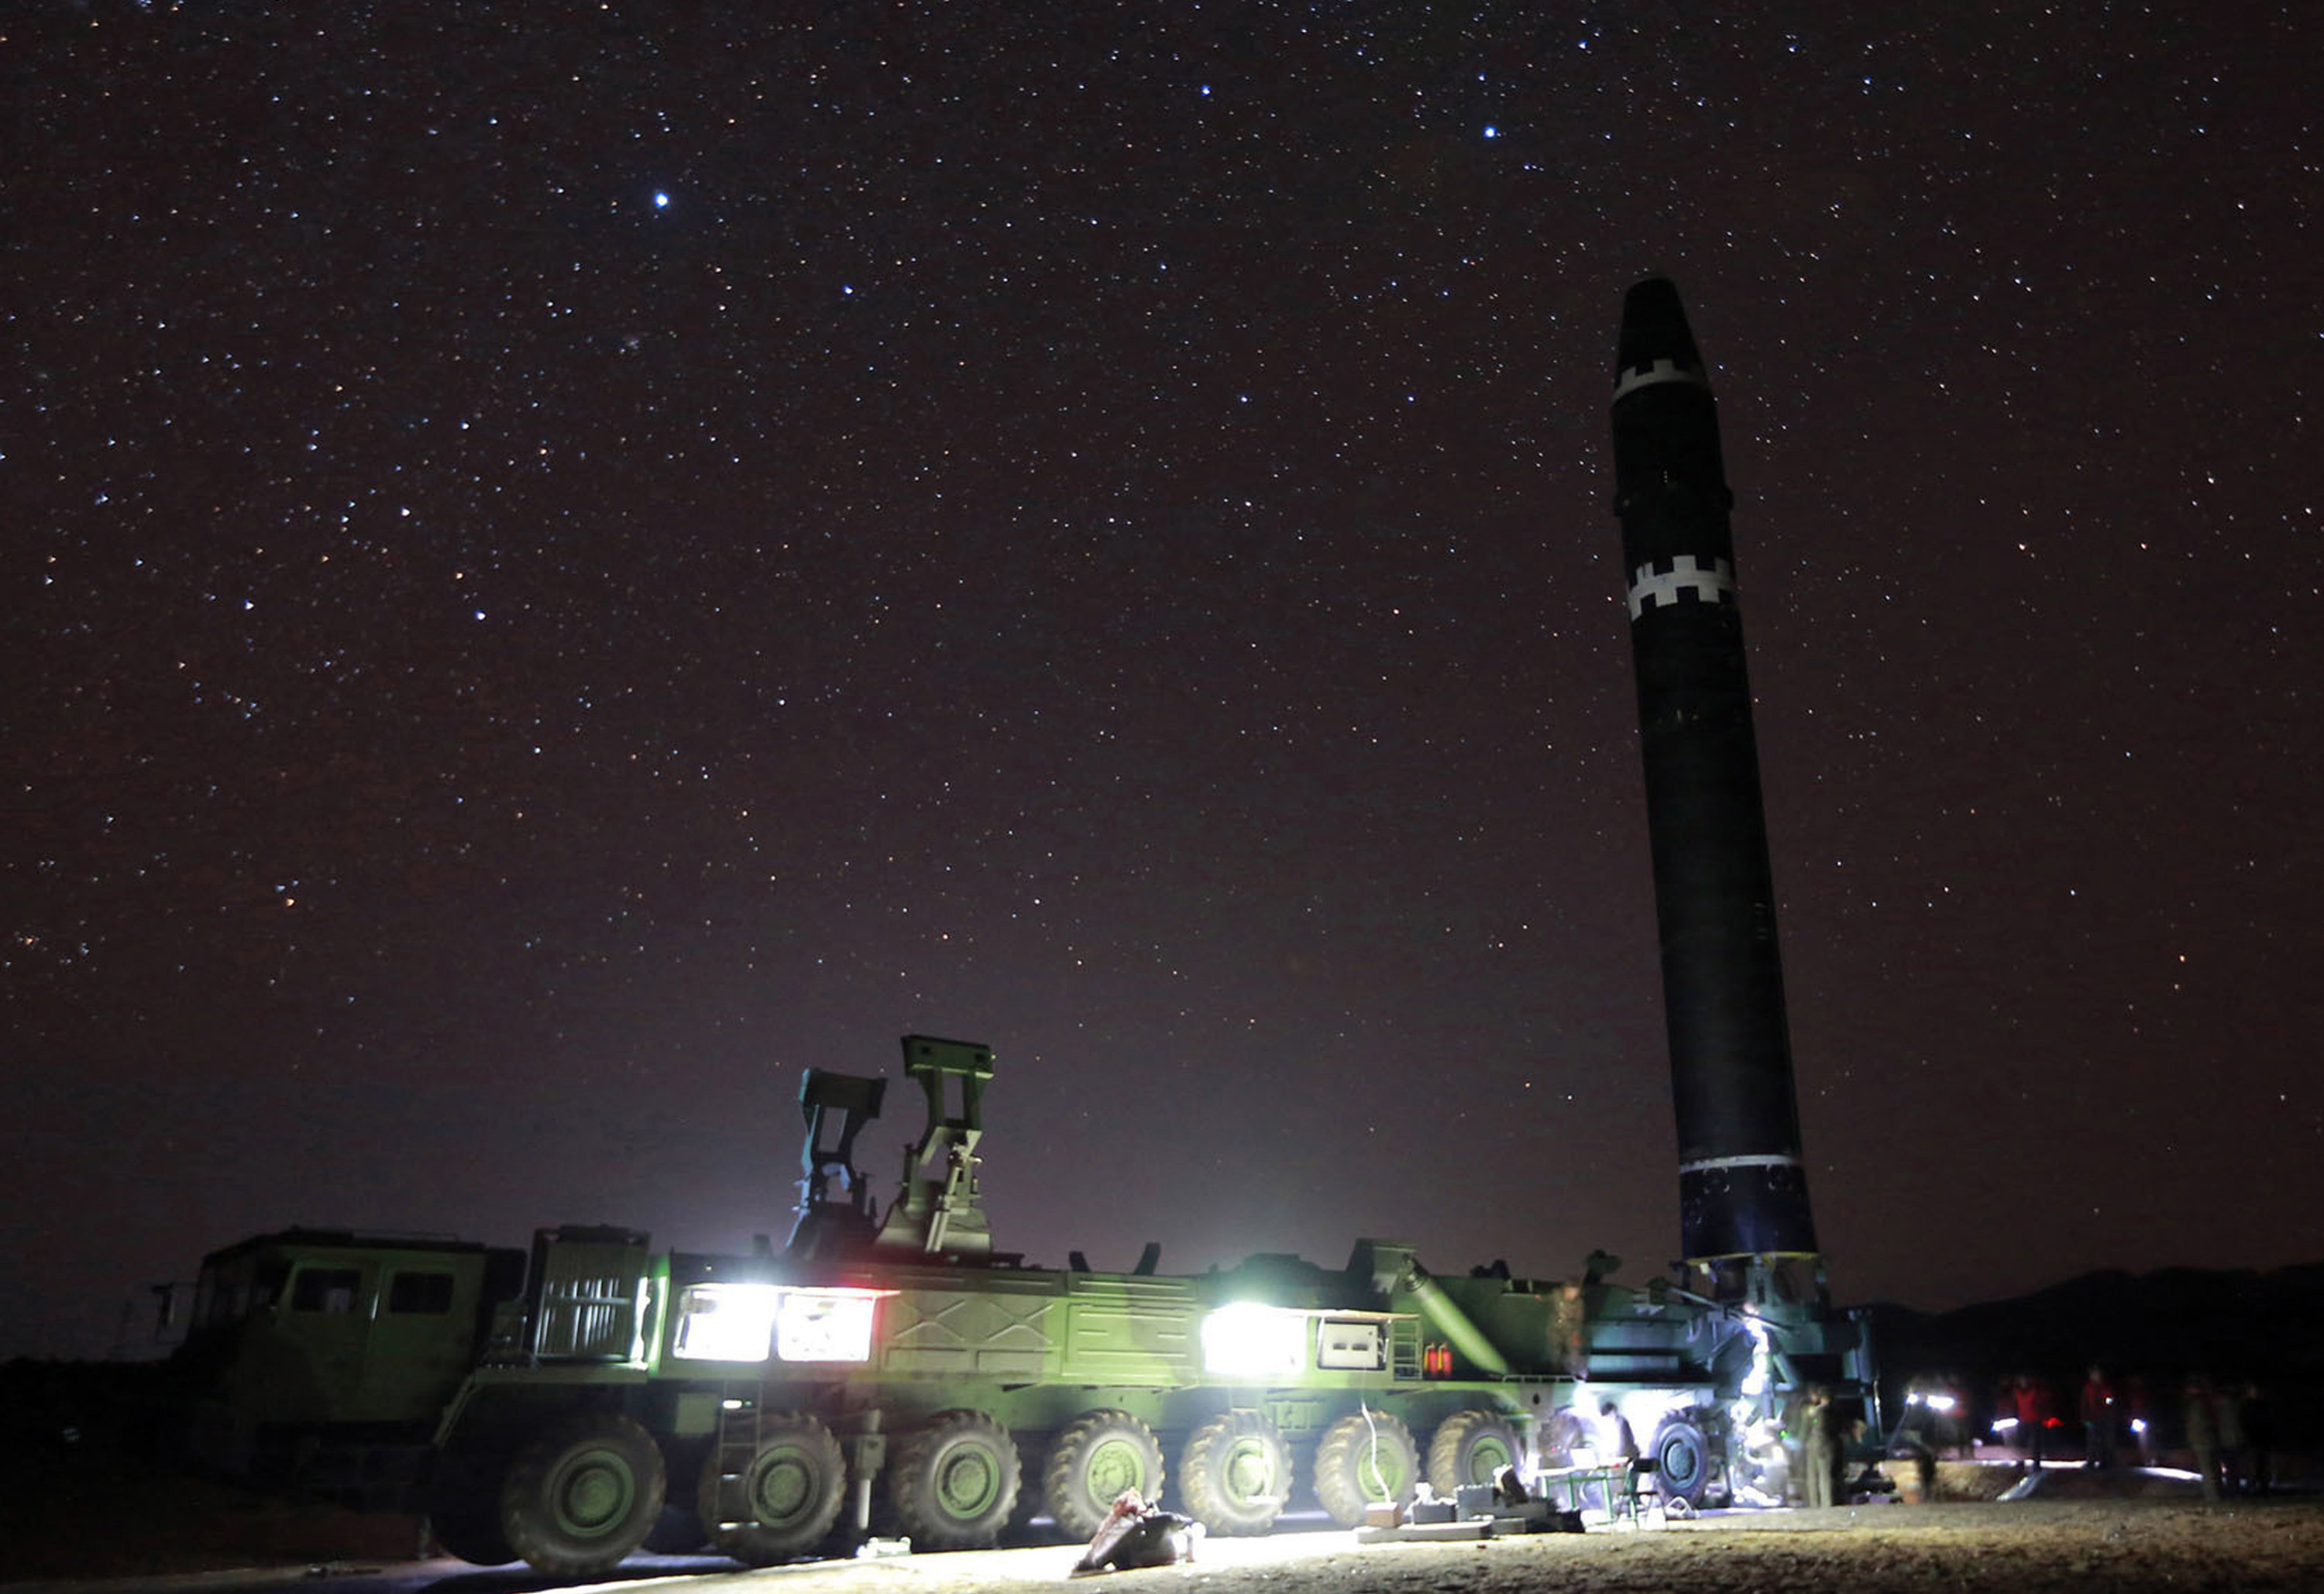 Hwasong-15 intercontinental ballistic missile